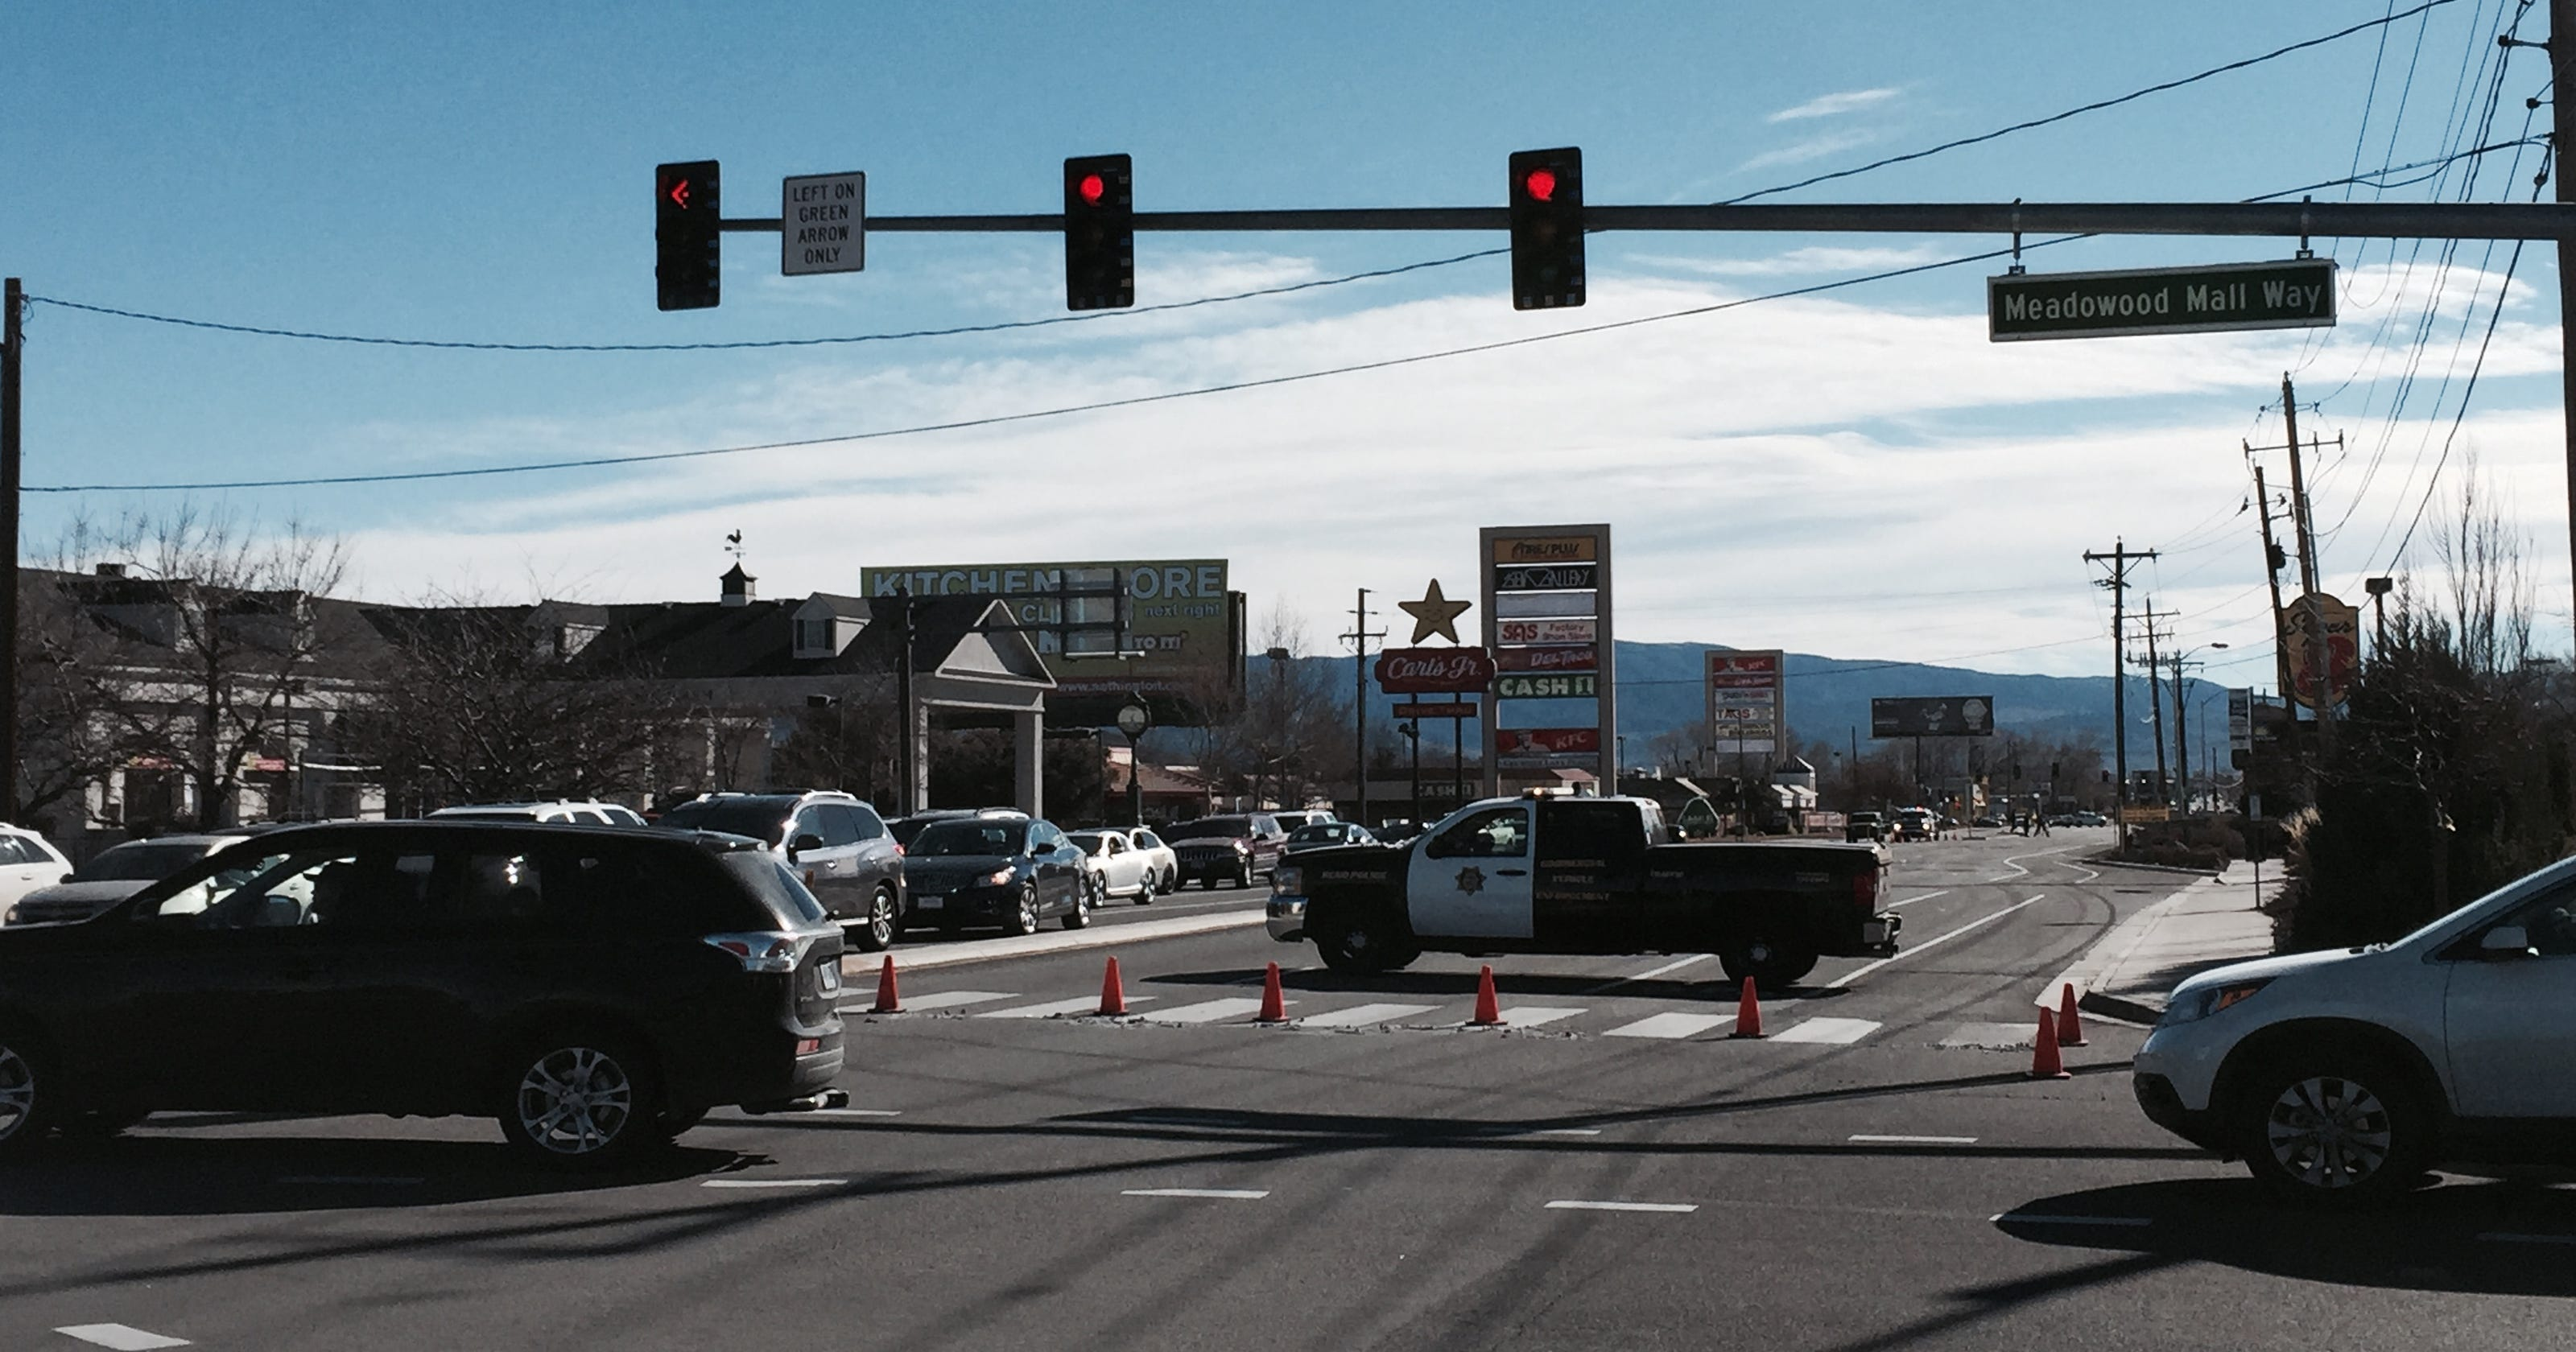 Update: South Virginia Street open after wreck clean up